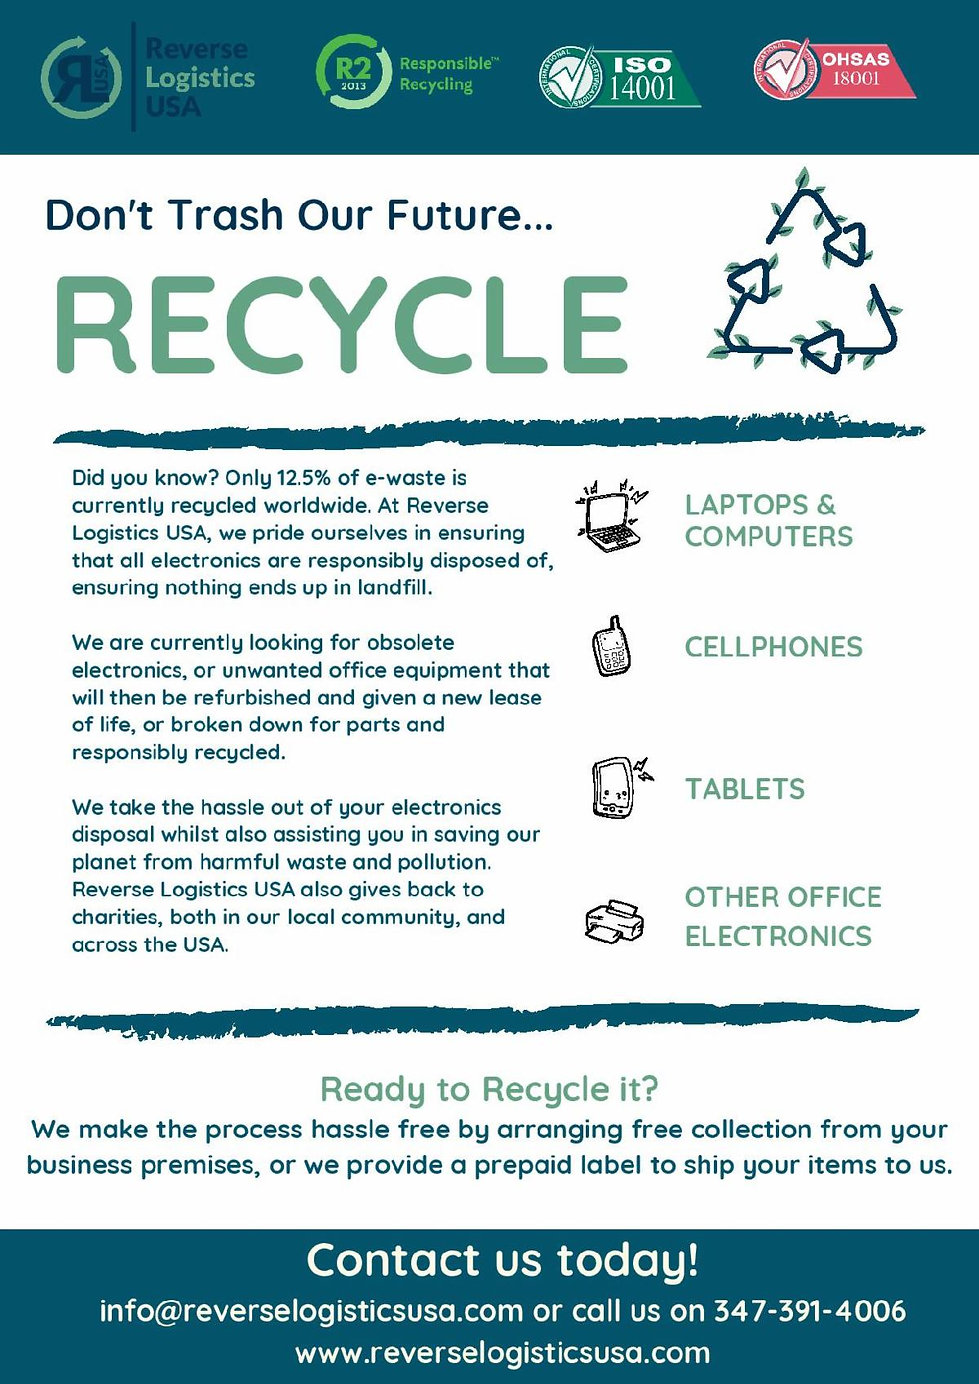 Recycling Poster _1_-page-001.jpg